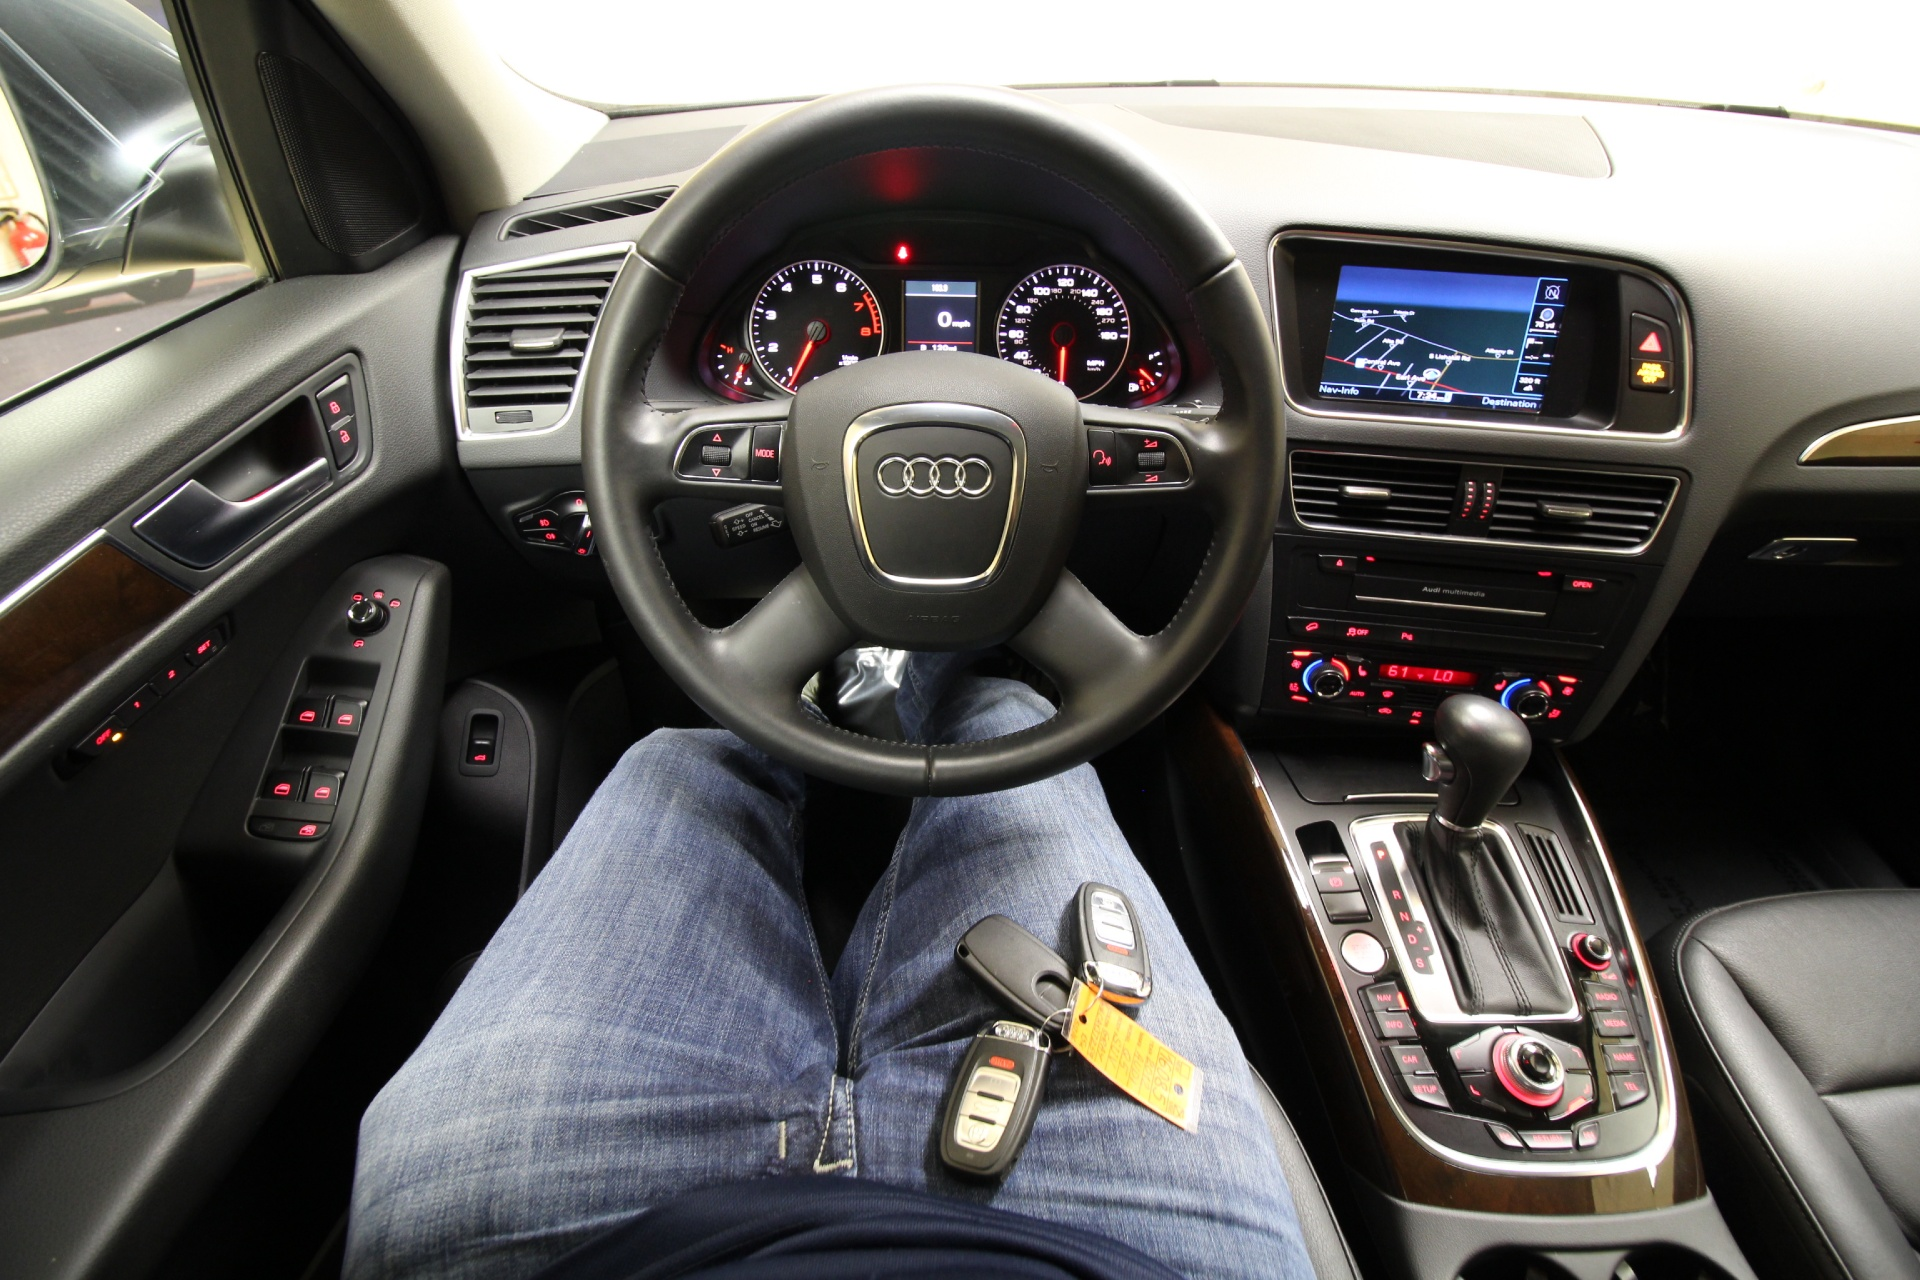 BMW Albany Ny >> 2012 Audi Q5 2.0T quattro Premium Plus AWD,LIKE NEW,LOADED WITH OPTIONS Stock # 16085 for sale ...